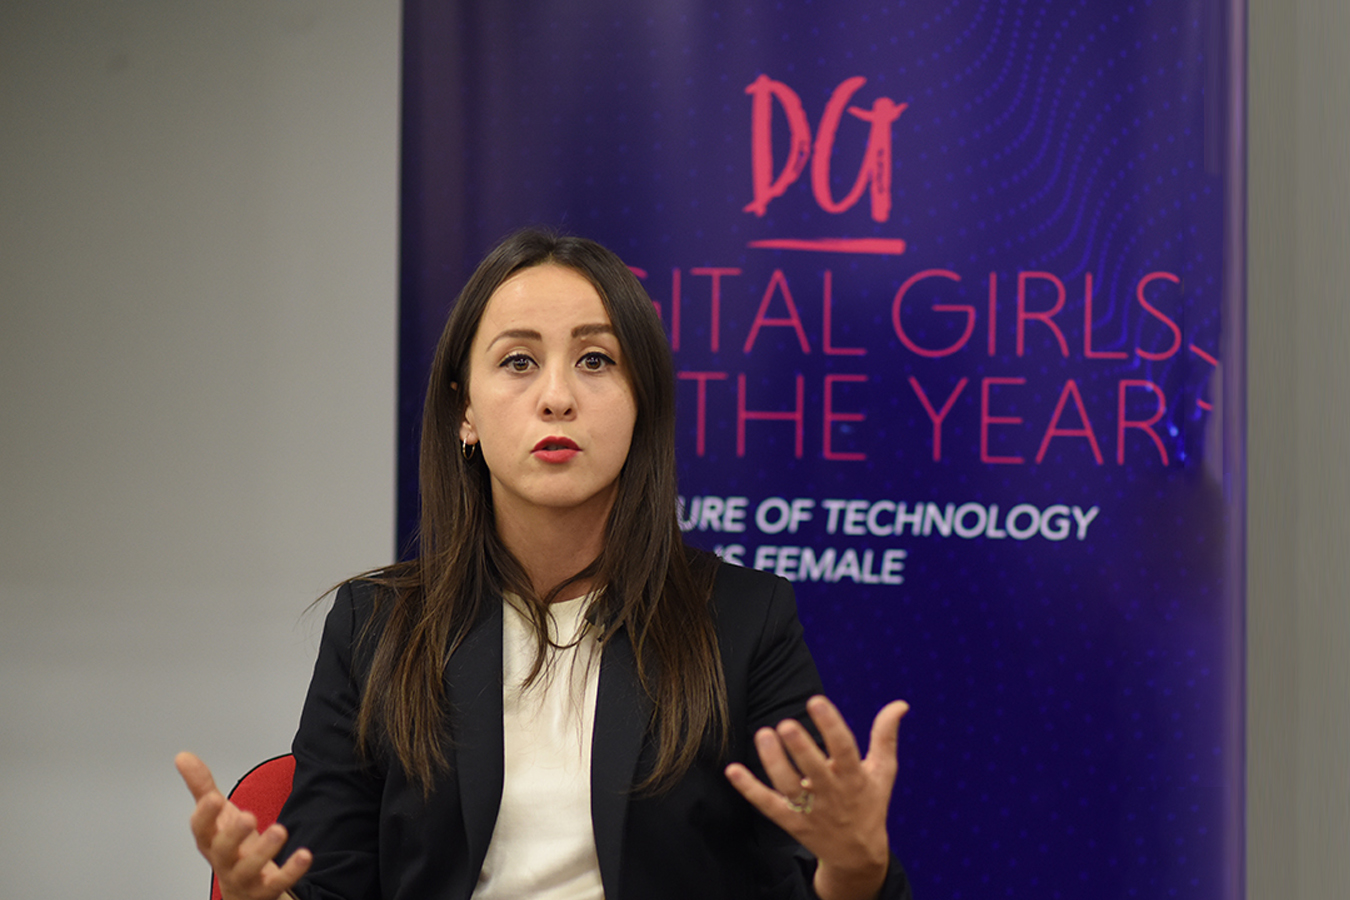 Siri cracks the business field – Digital Girls of the Year